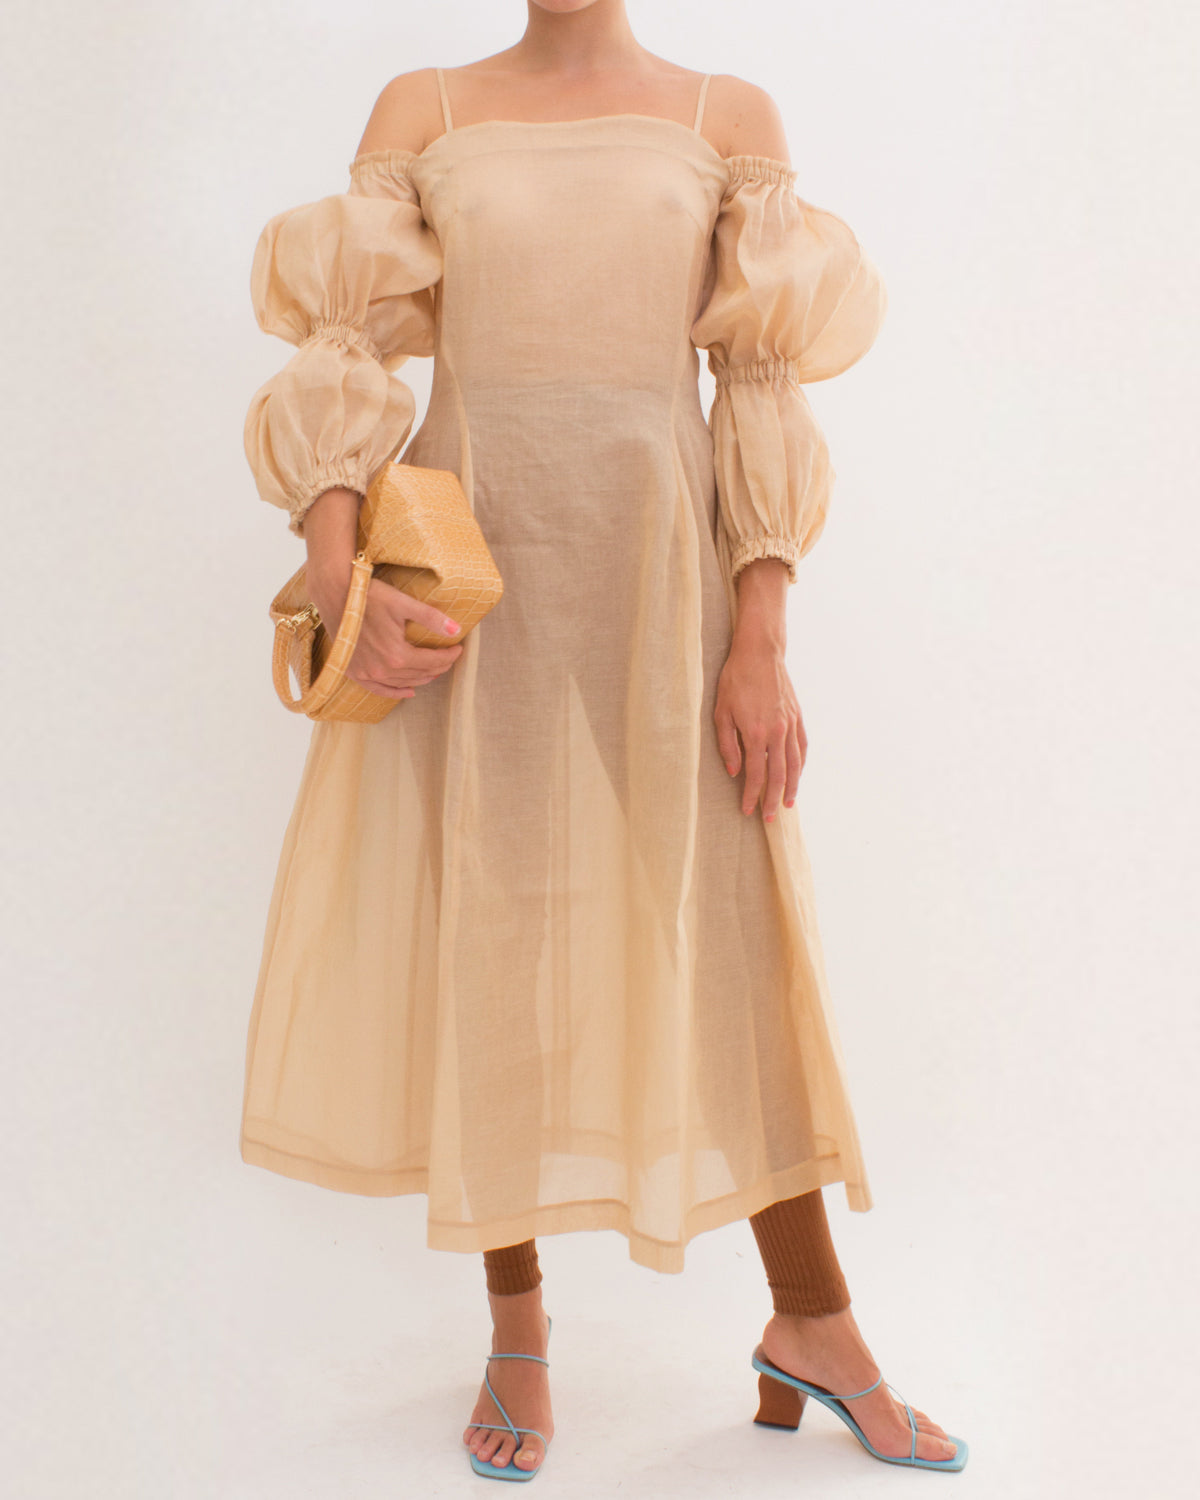 Lorna Dress Cotton Voile Taupe